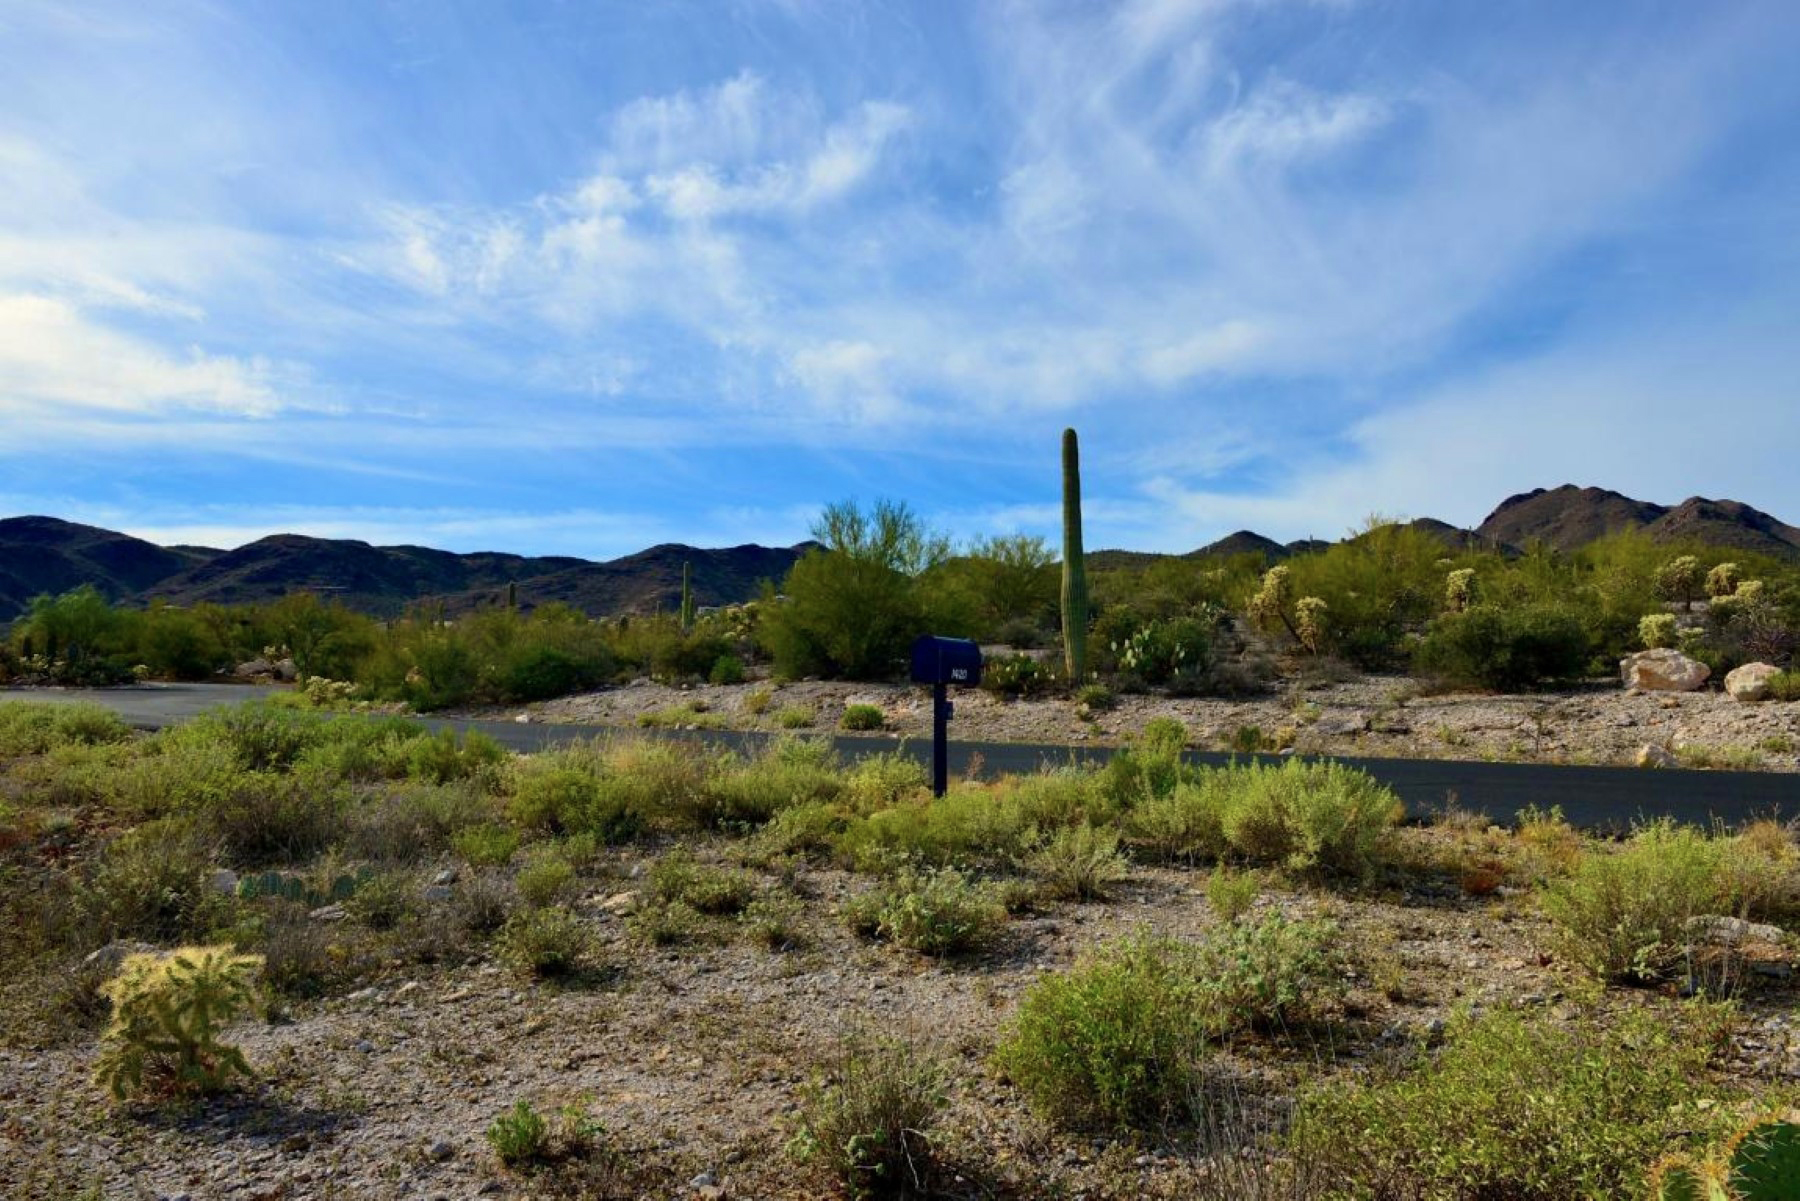 Property For Sale at Glorious Lot in Gated Community of Saguaro Cliffs